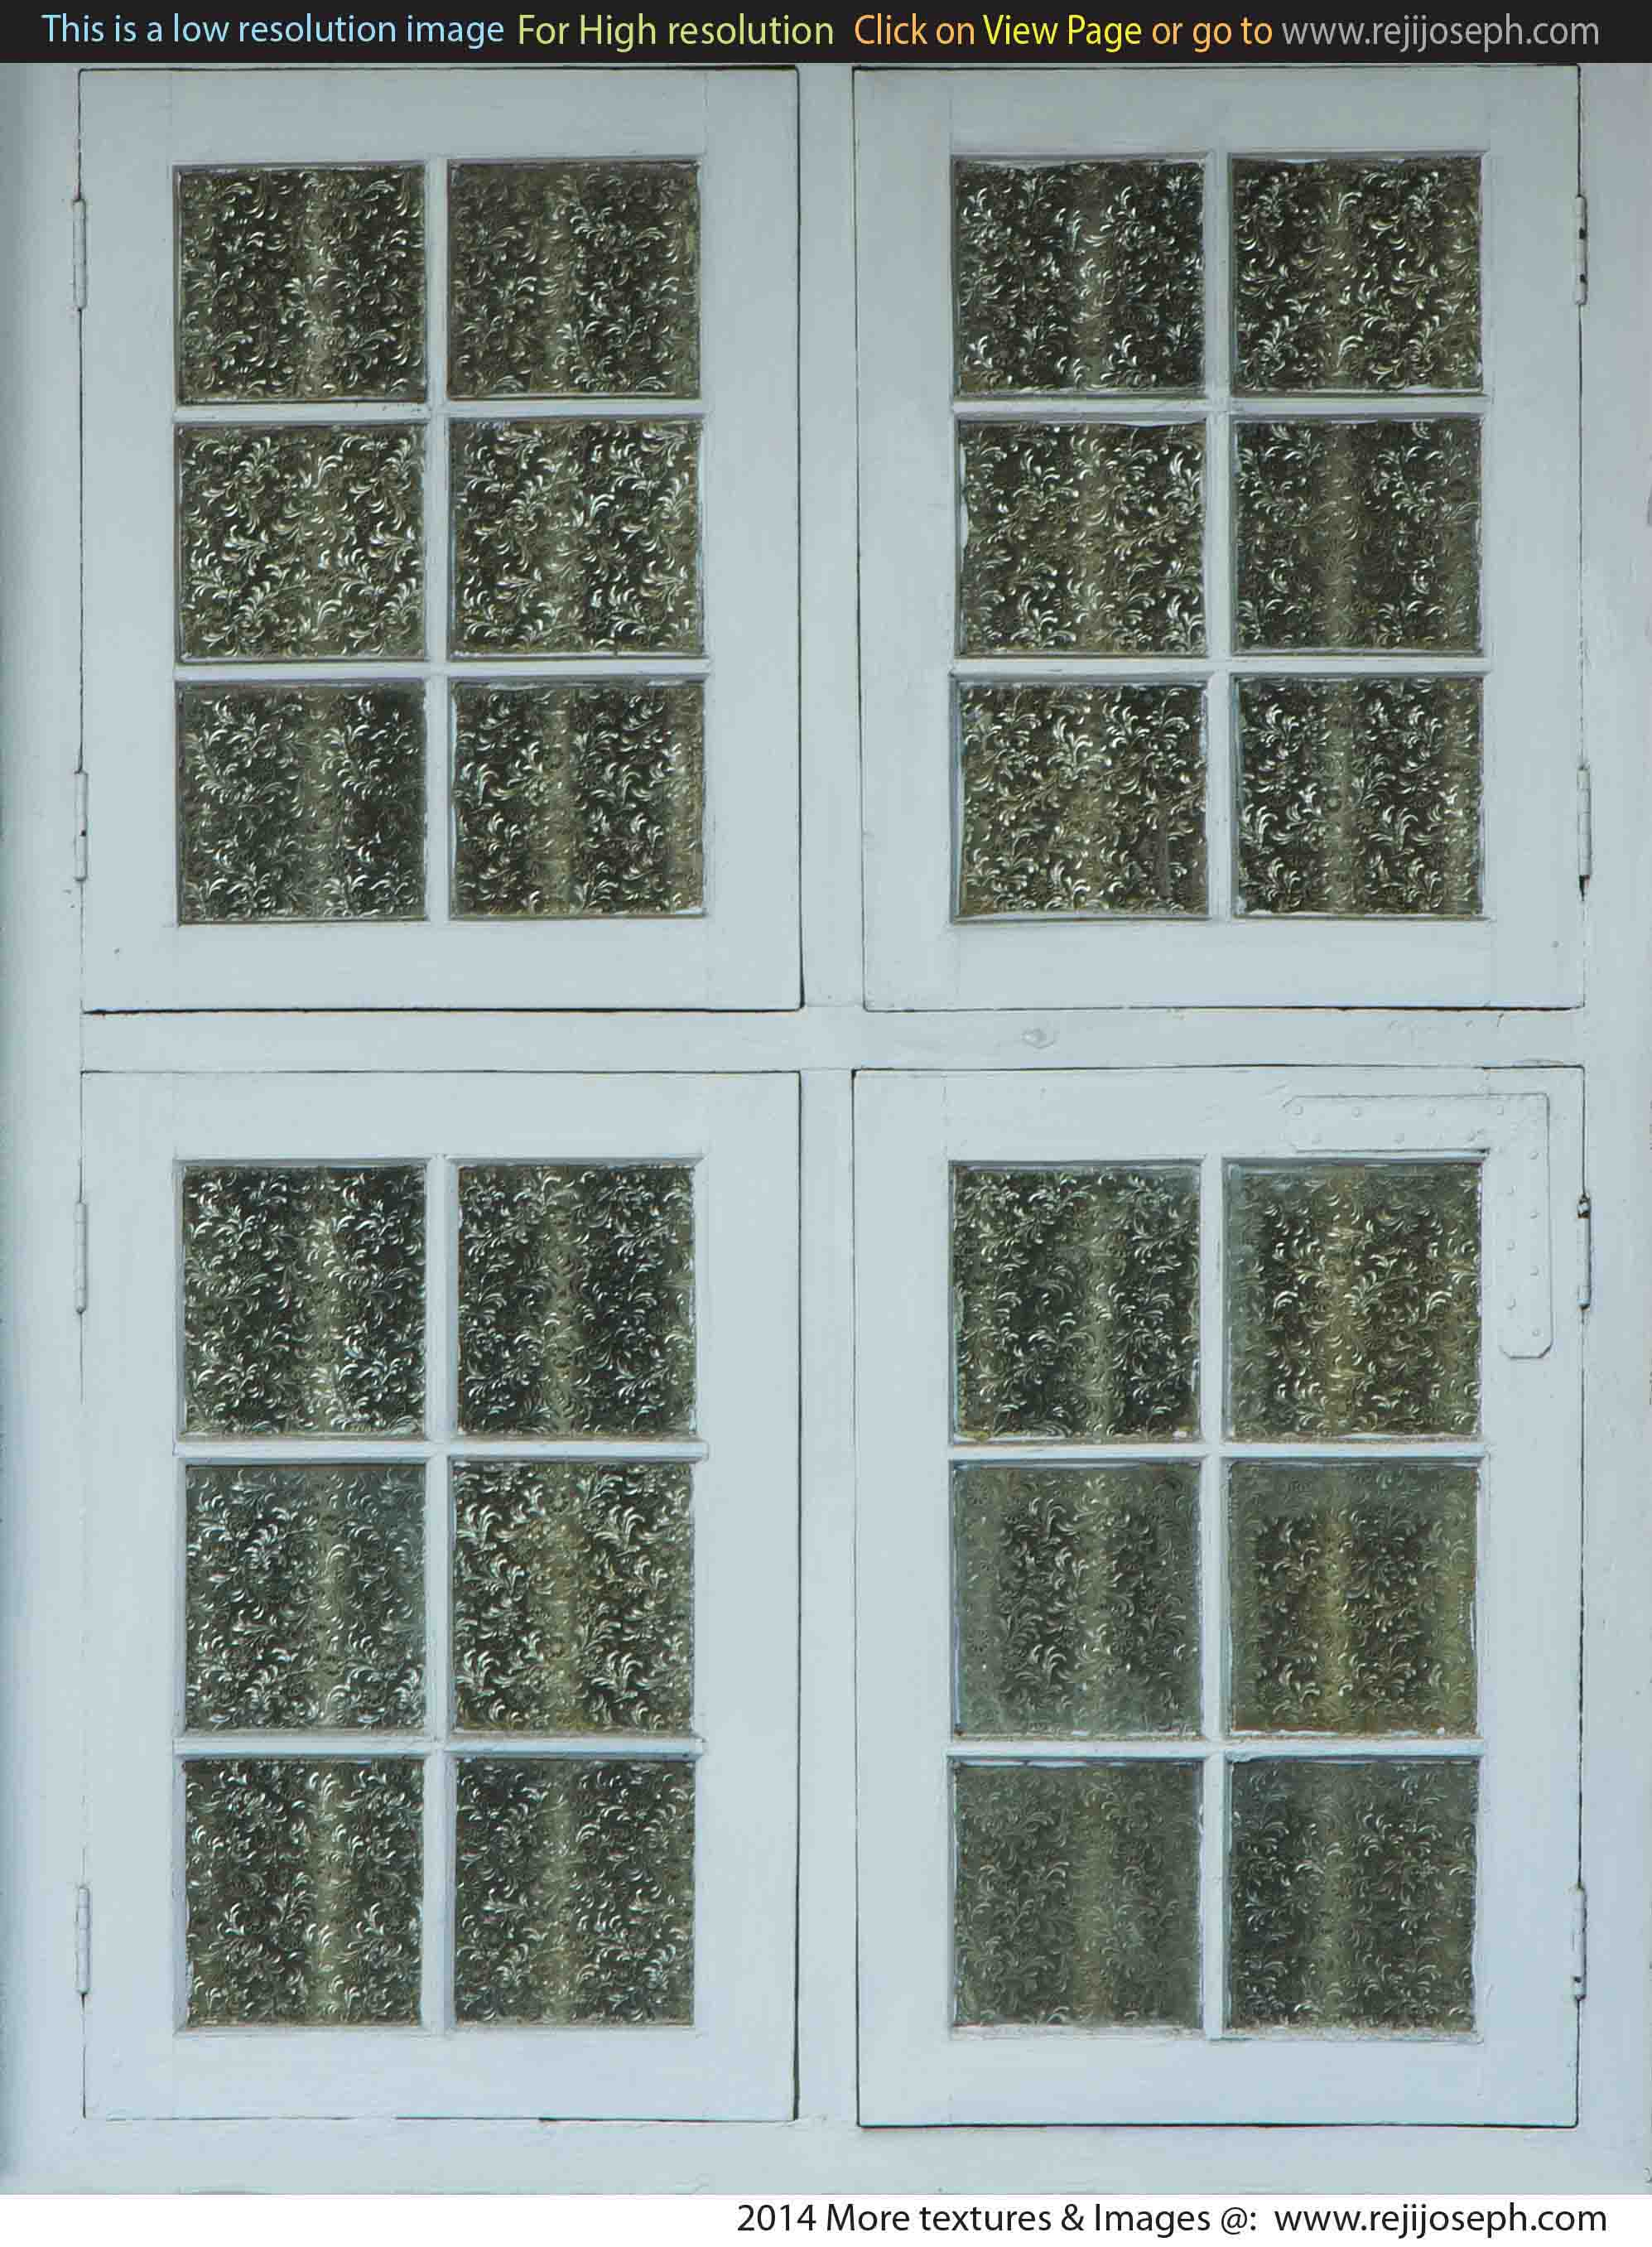 Painted glass Window texture 00004